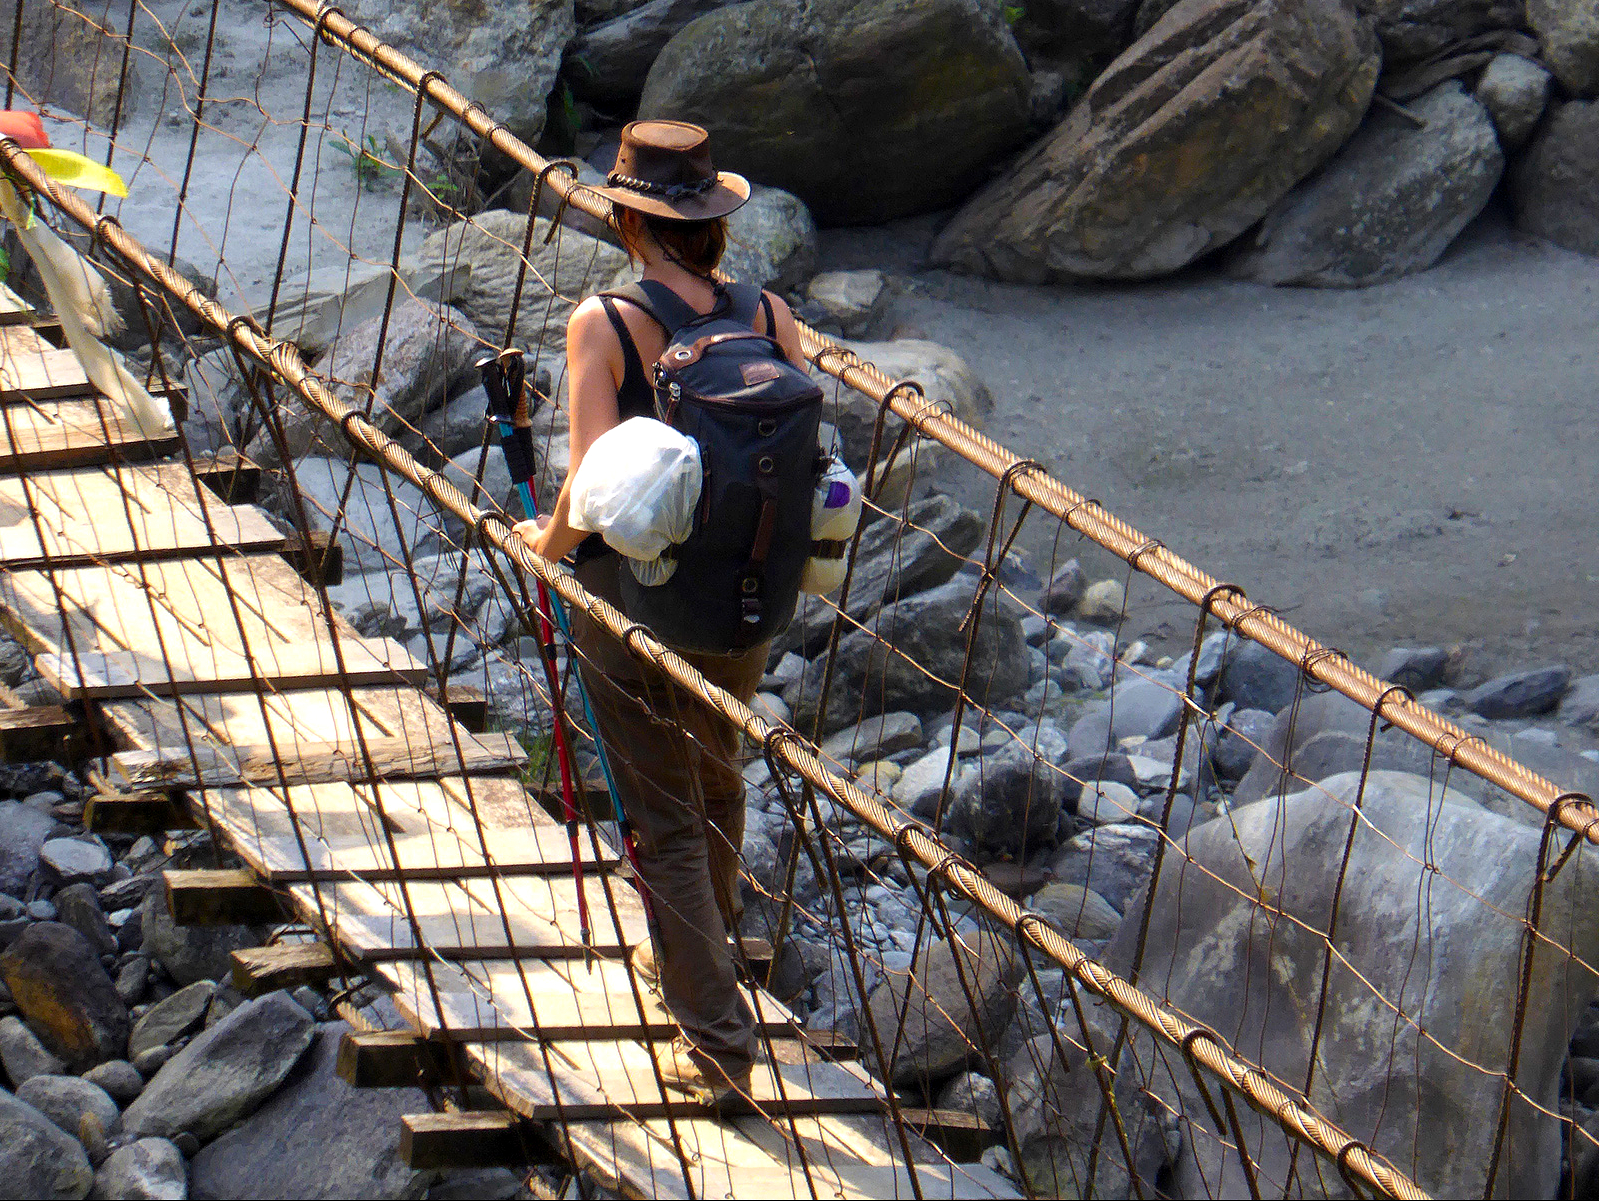 female trekker crossing one of the many swing bridges that occur along the criss -cross Annapurna Base Camp, and Annapurna Poon hill treks in Nepal